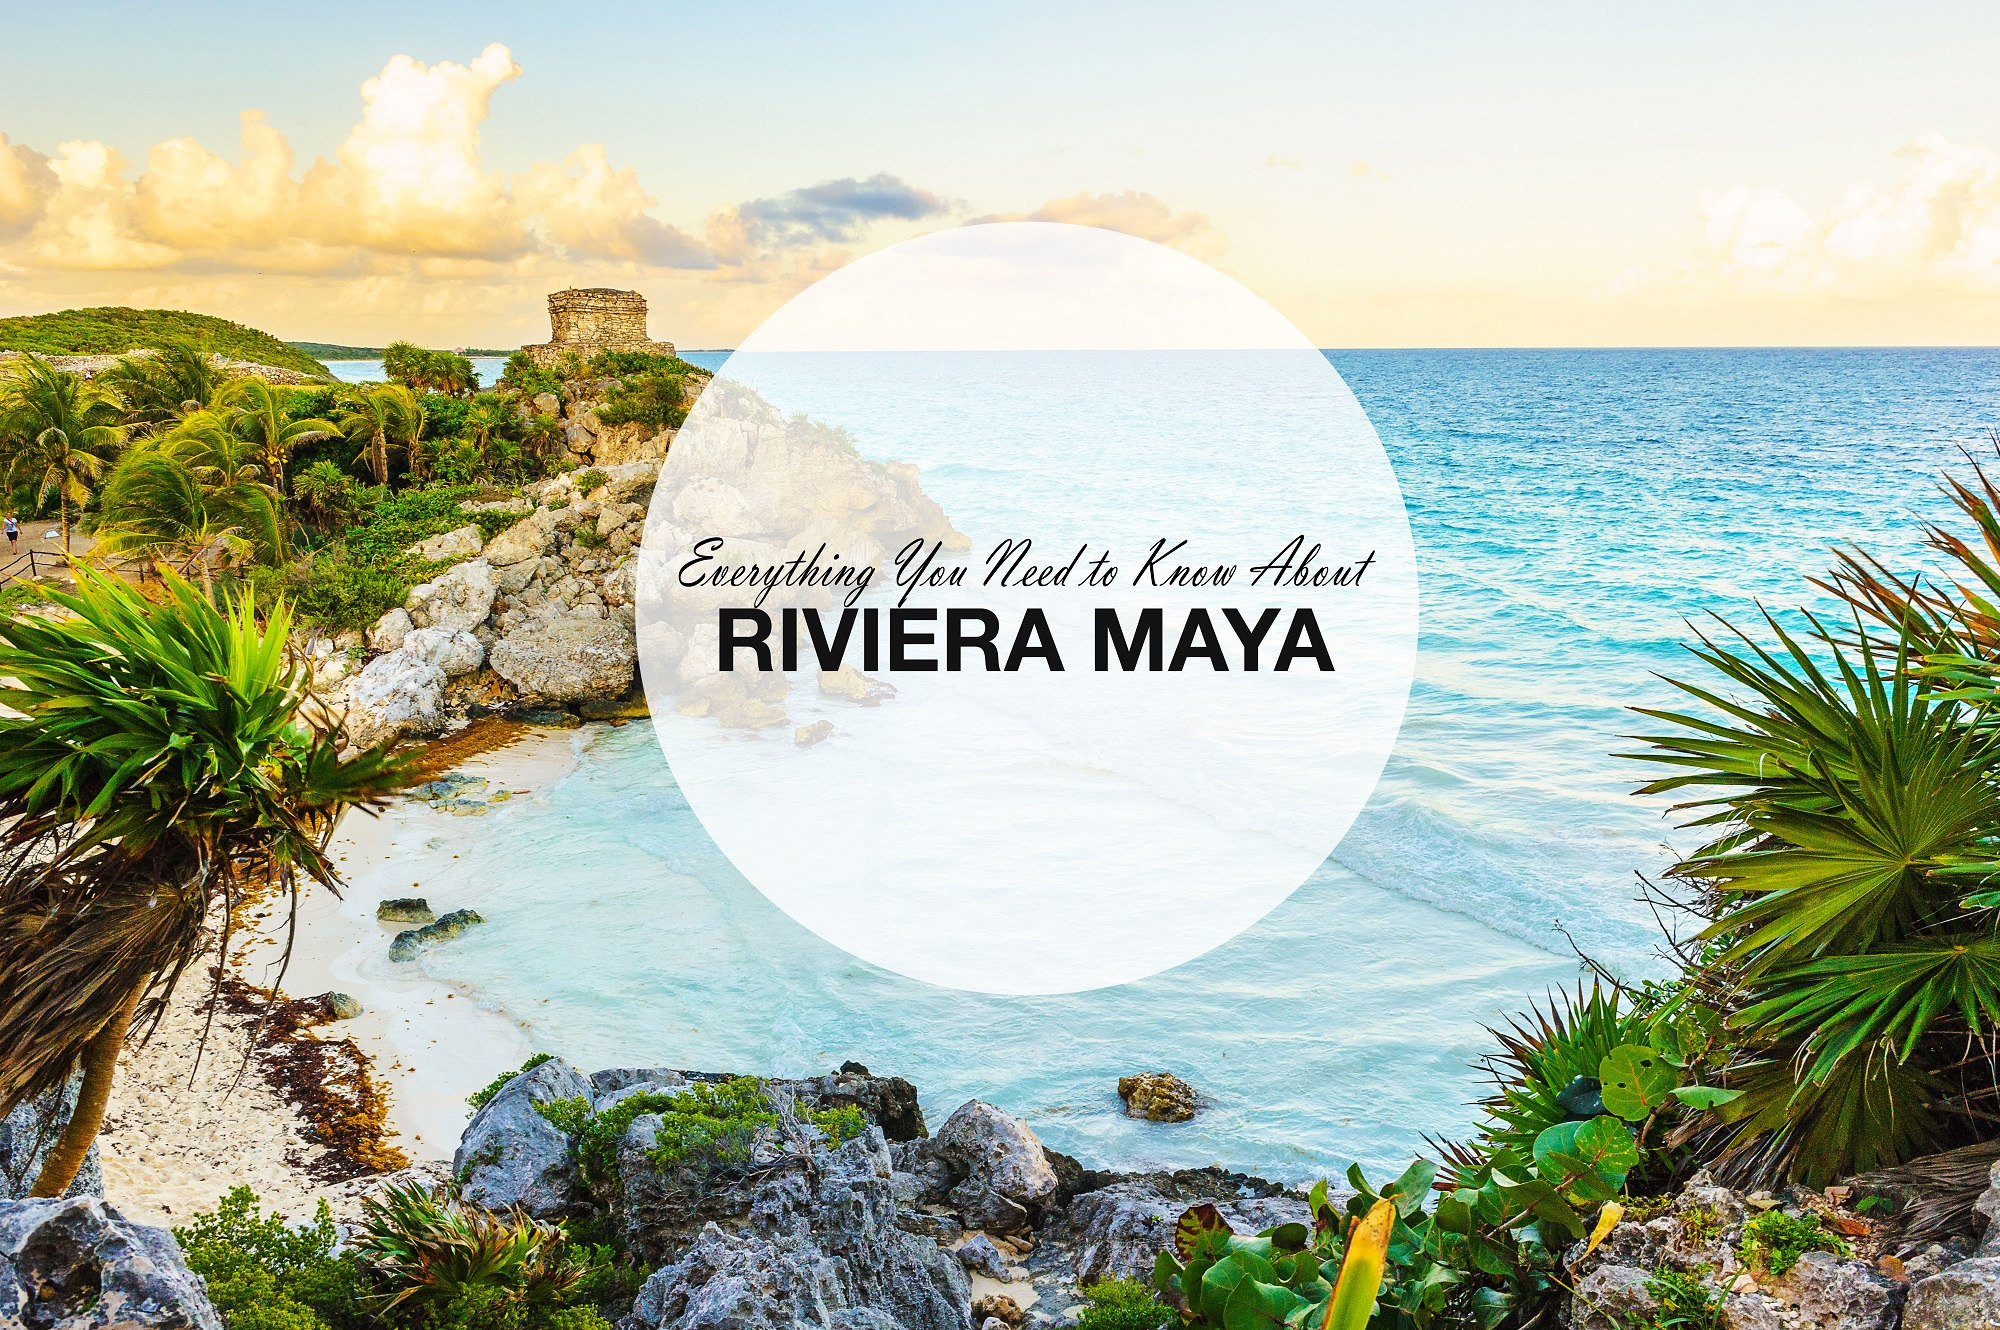 Everything-you-need-to-know-about-riviera-maya